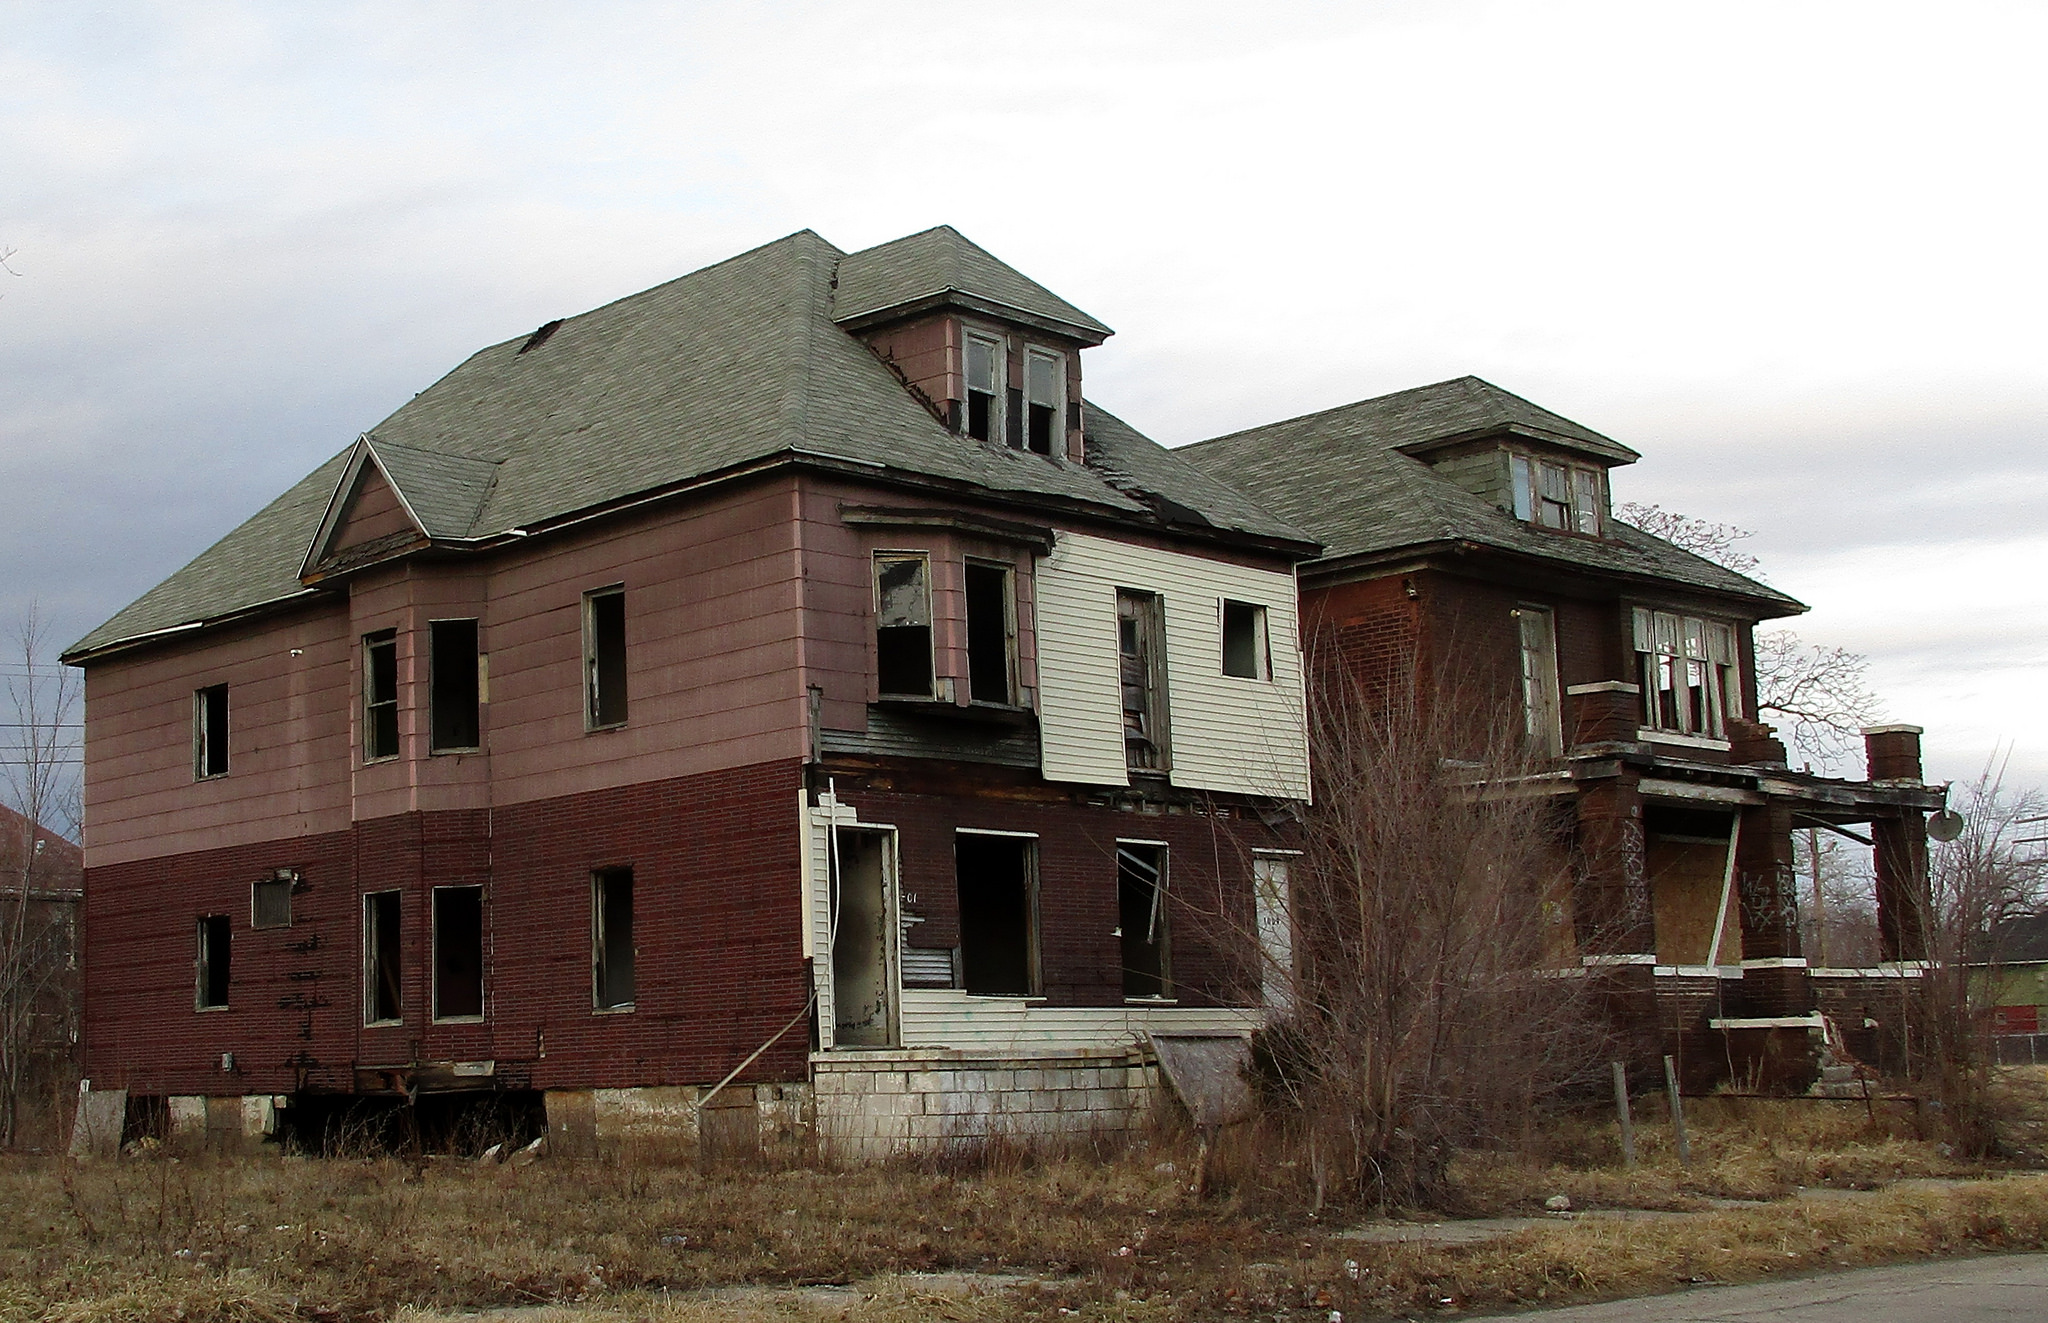 A $500 House in Detroit by Drew Philip; Vacant House in Detroit, Michigan